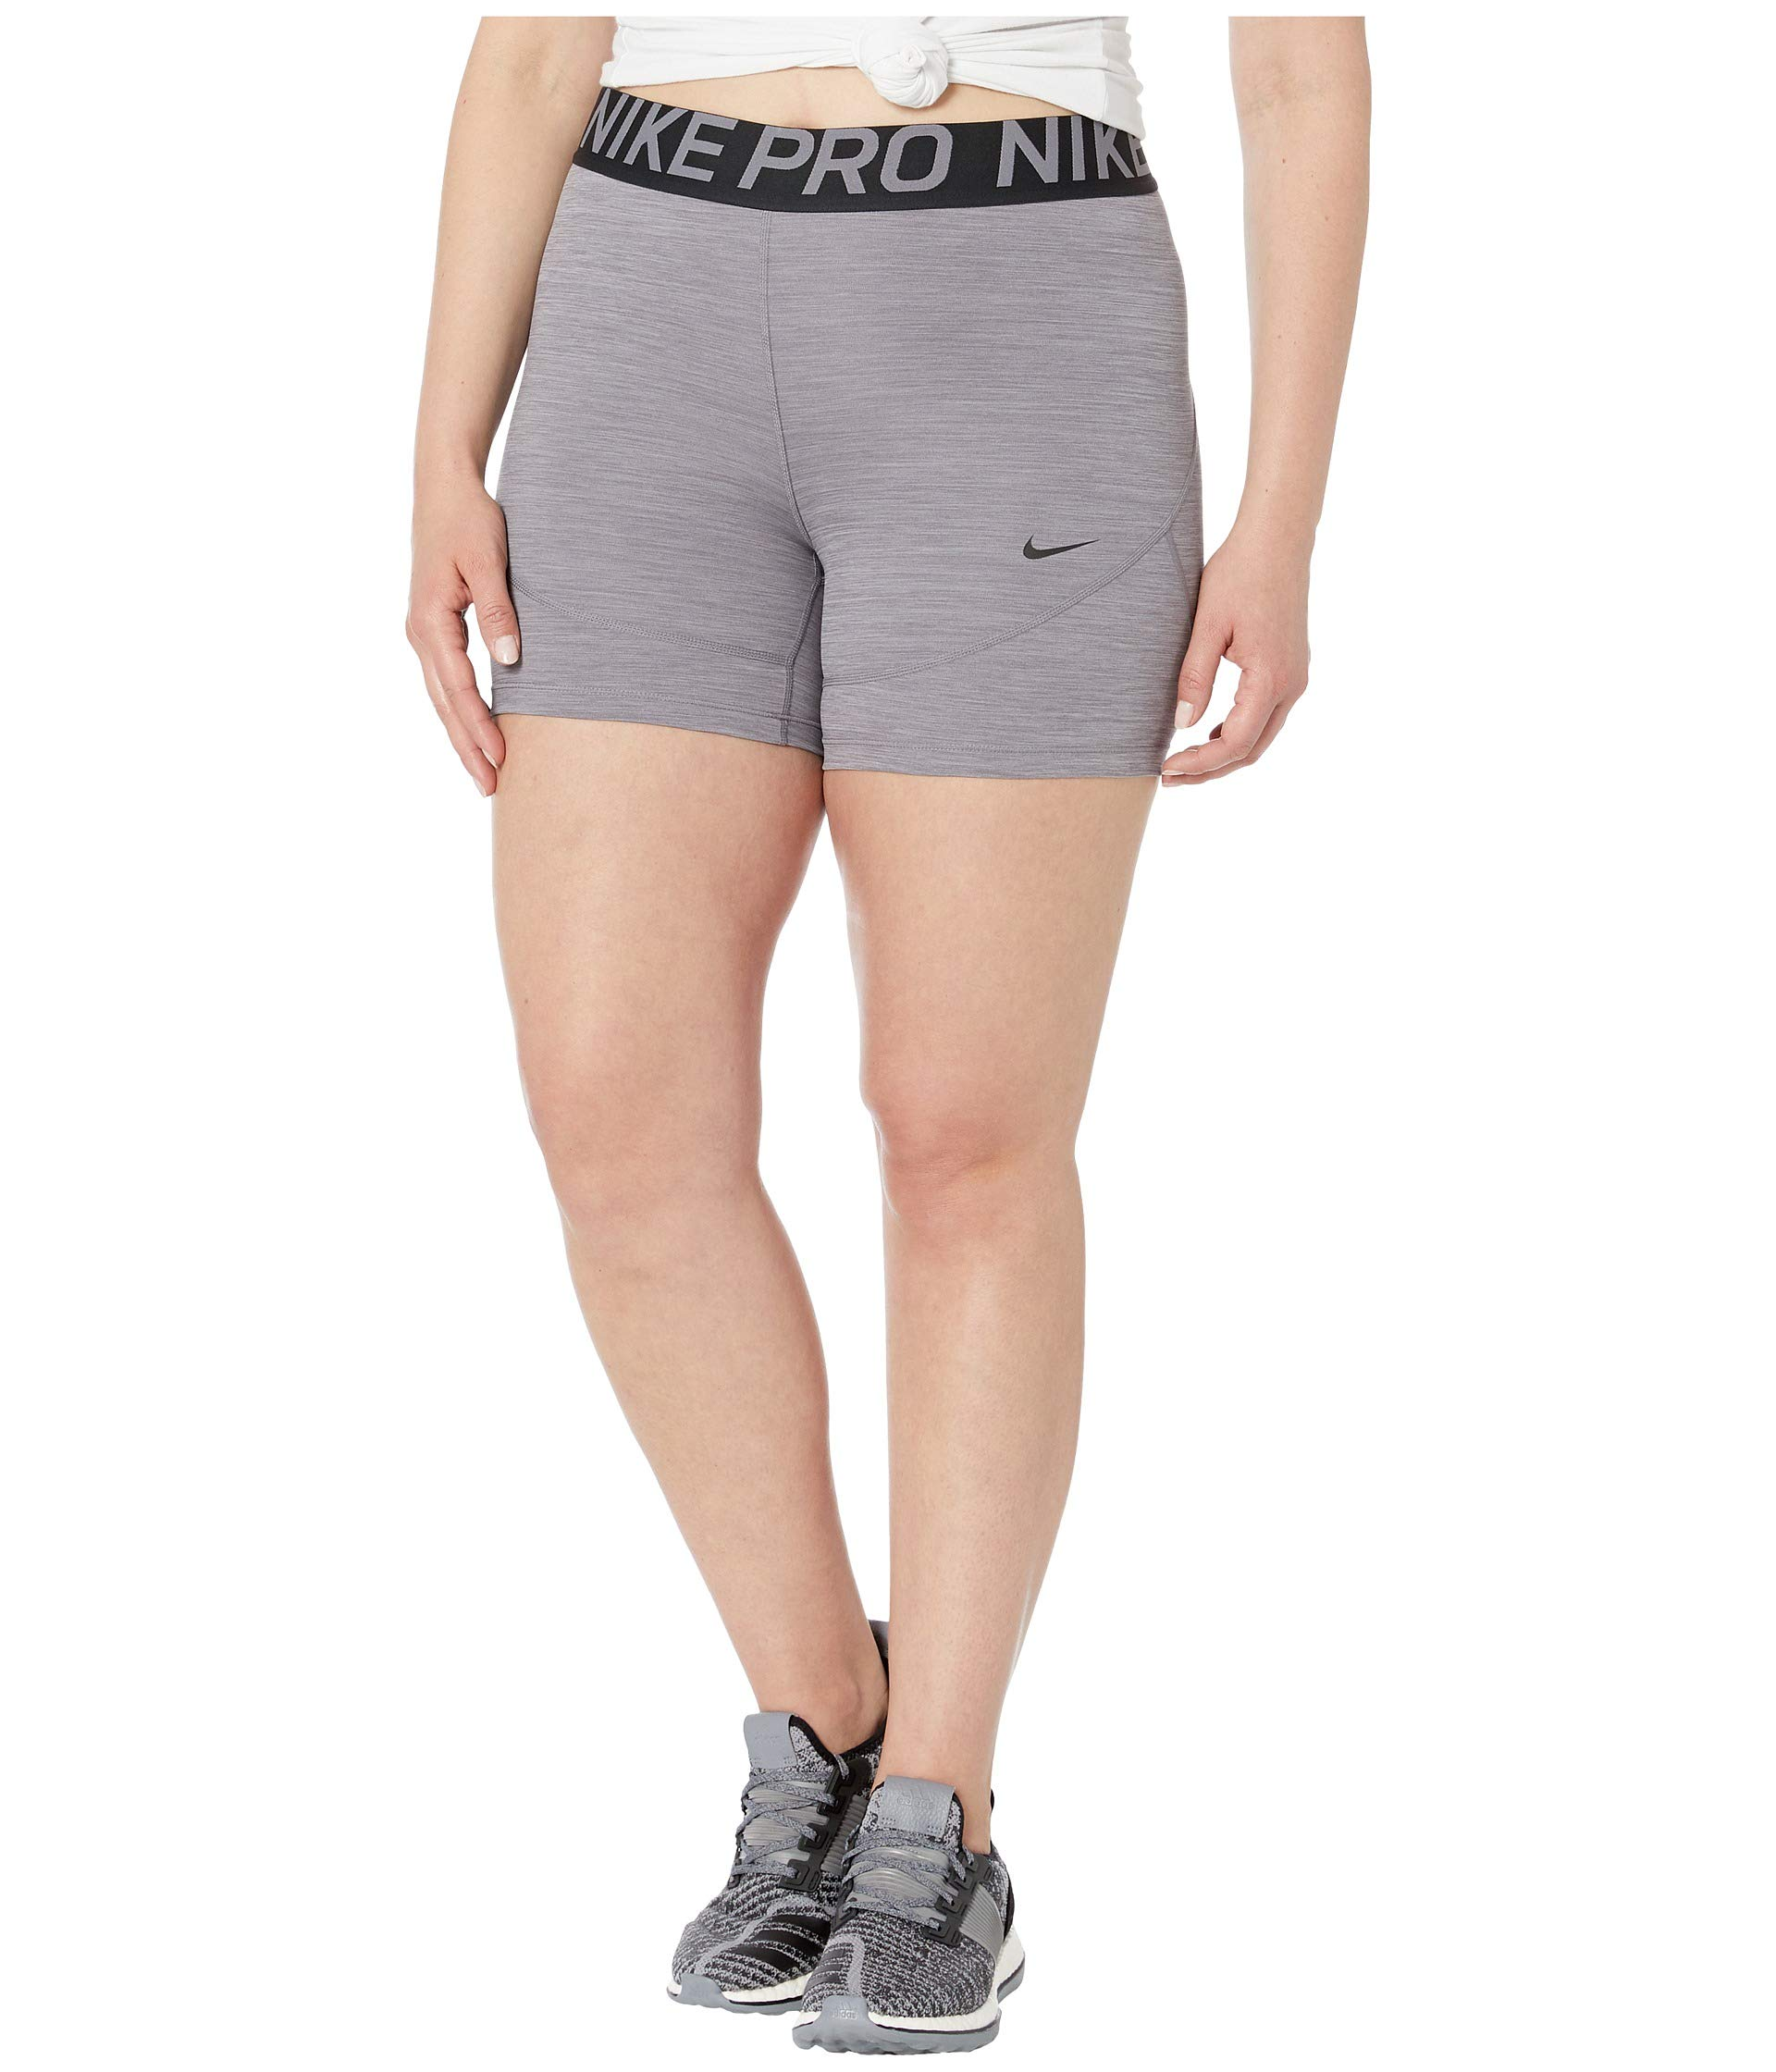 Nike Womens Pro 5 Training Shorts (Medium, Gunsmoke) by Nike